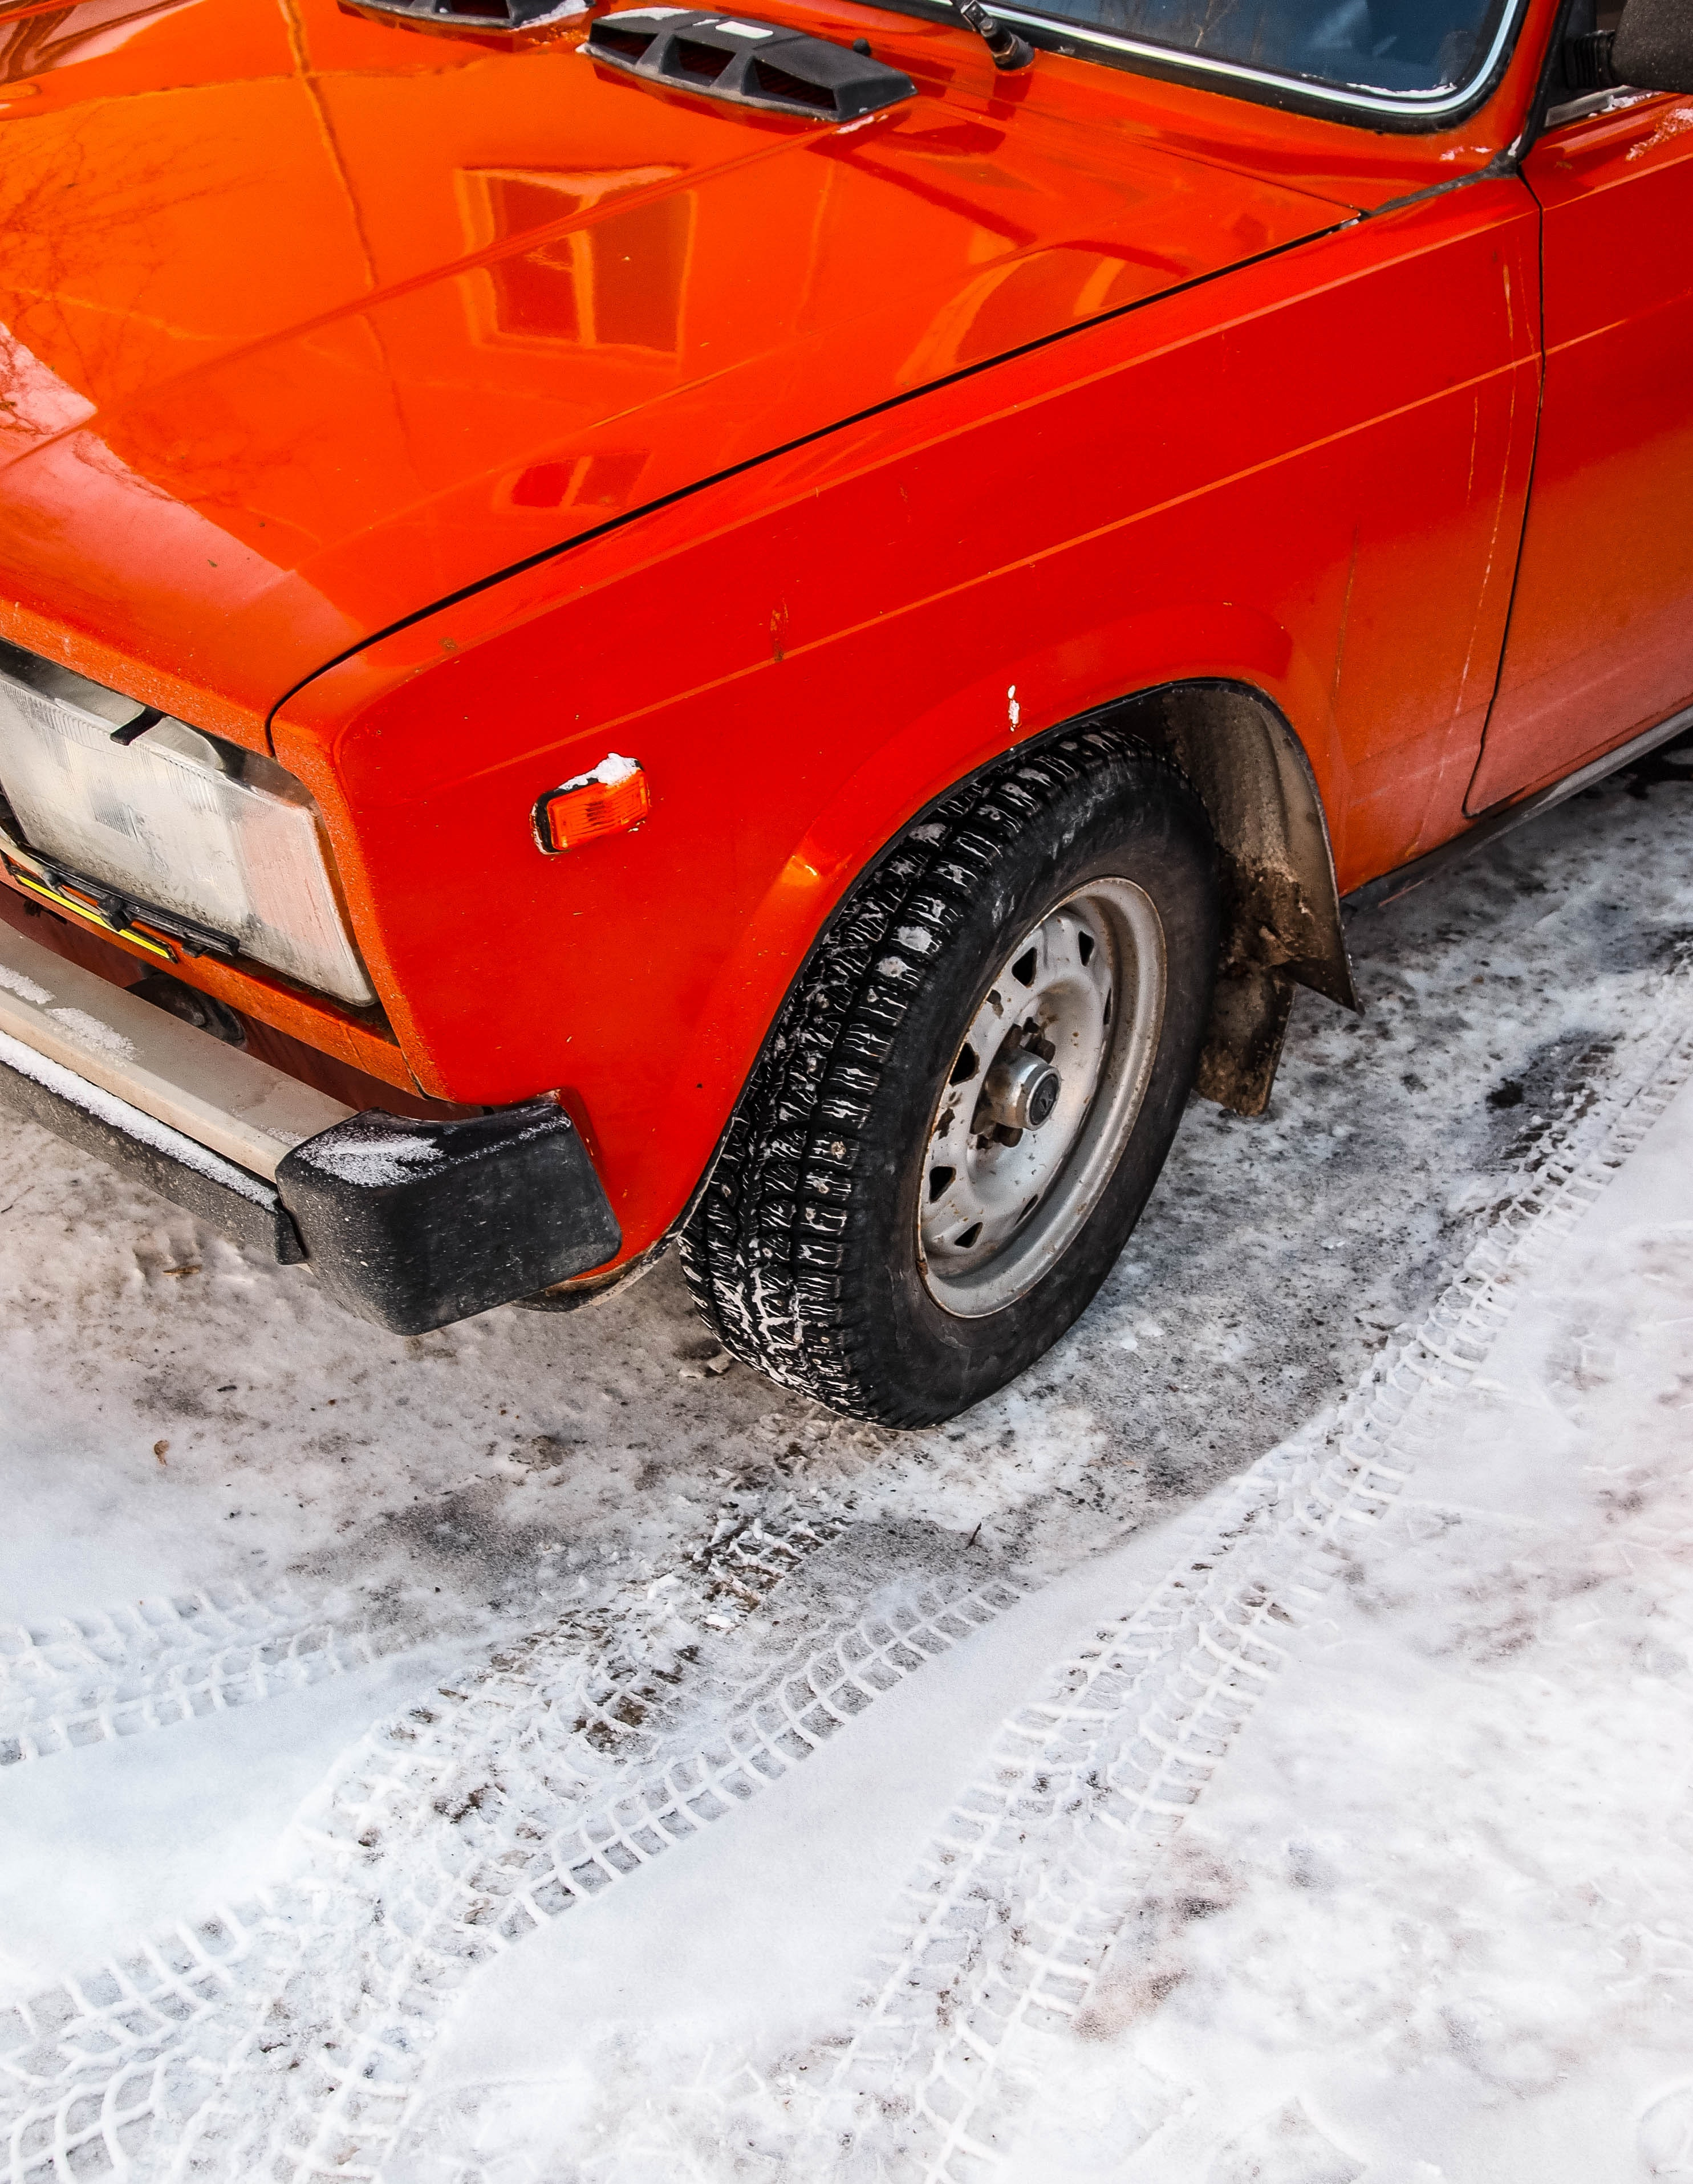 Photography of Red Classic Car, Snow, Winter, Wheel, Vintage car, HQ Photo